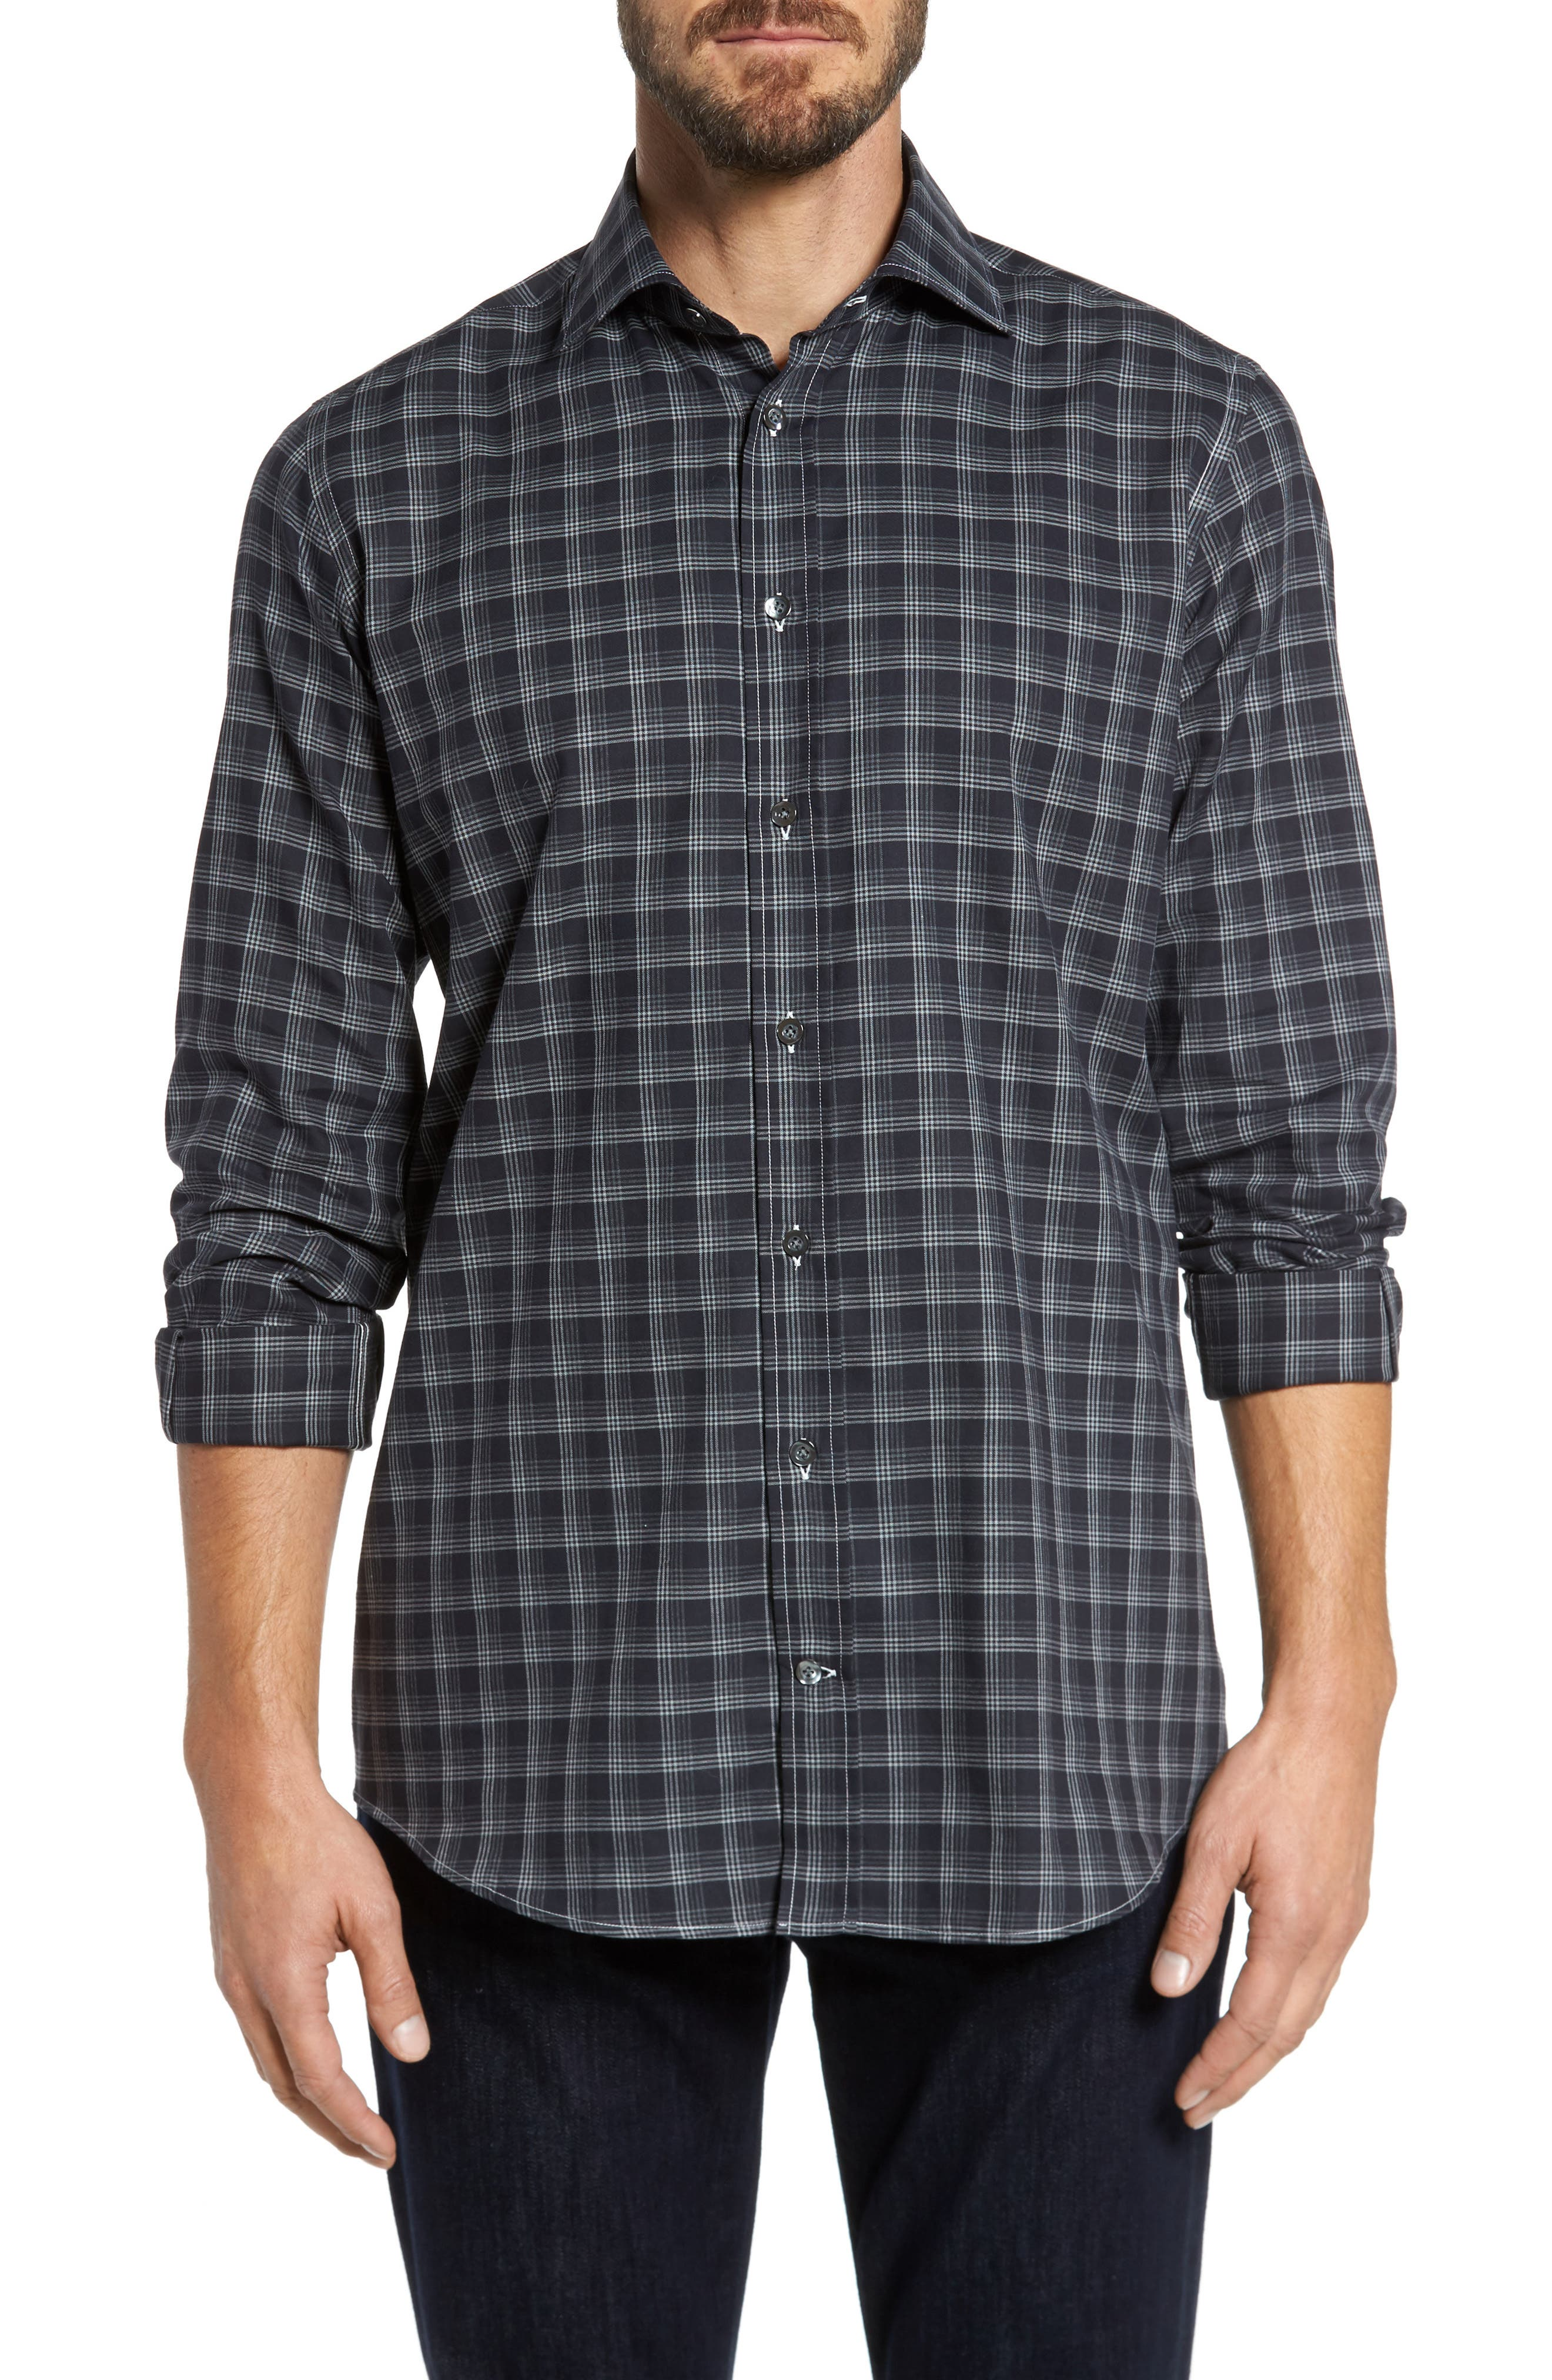 Alternate Image 1 Selected - Luciano Barbera Classic Fit Plaid Sport Shirt